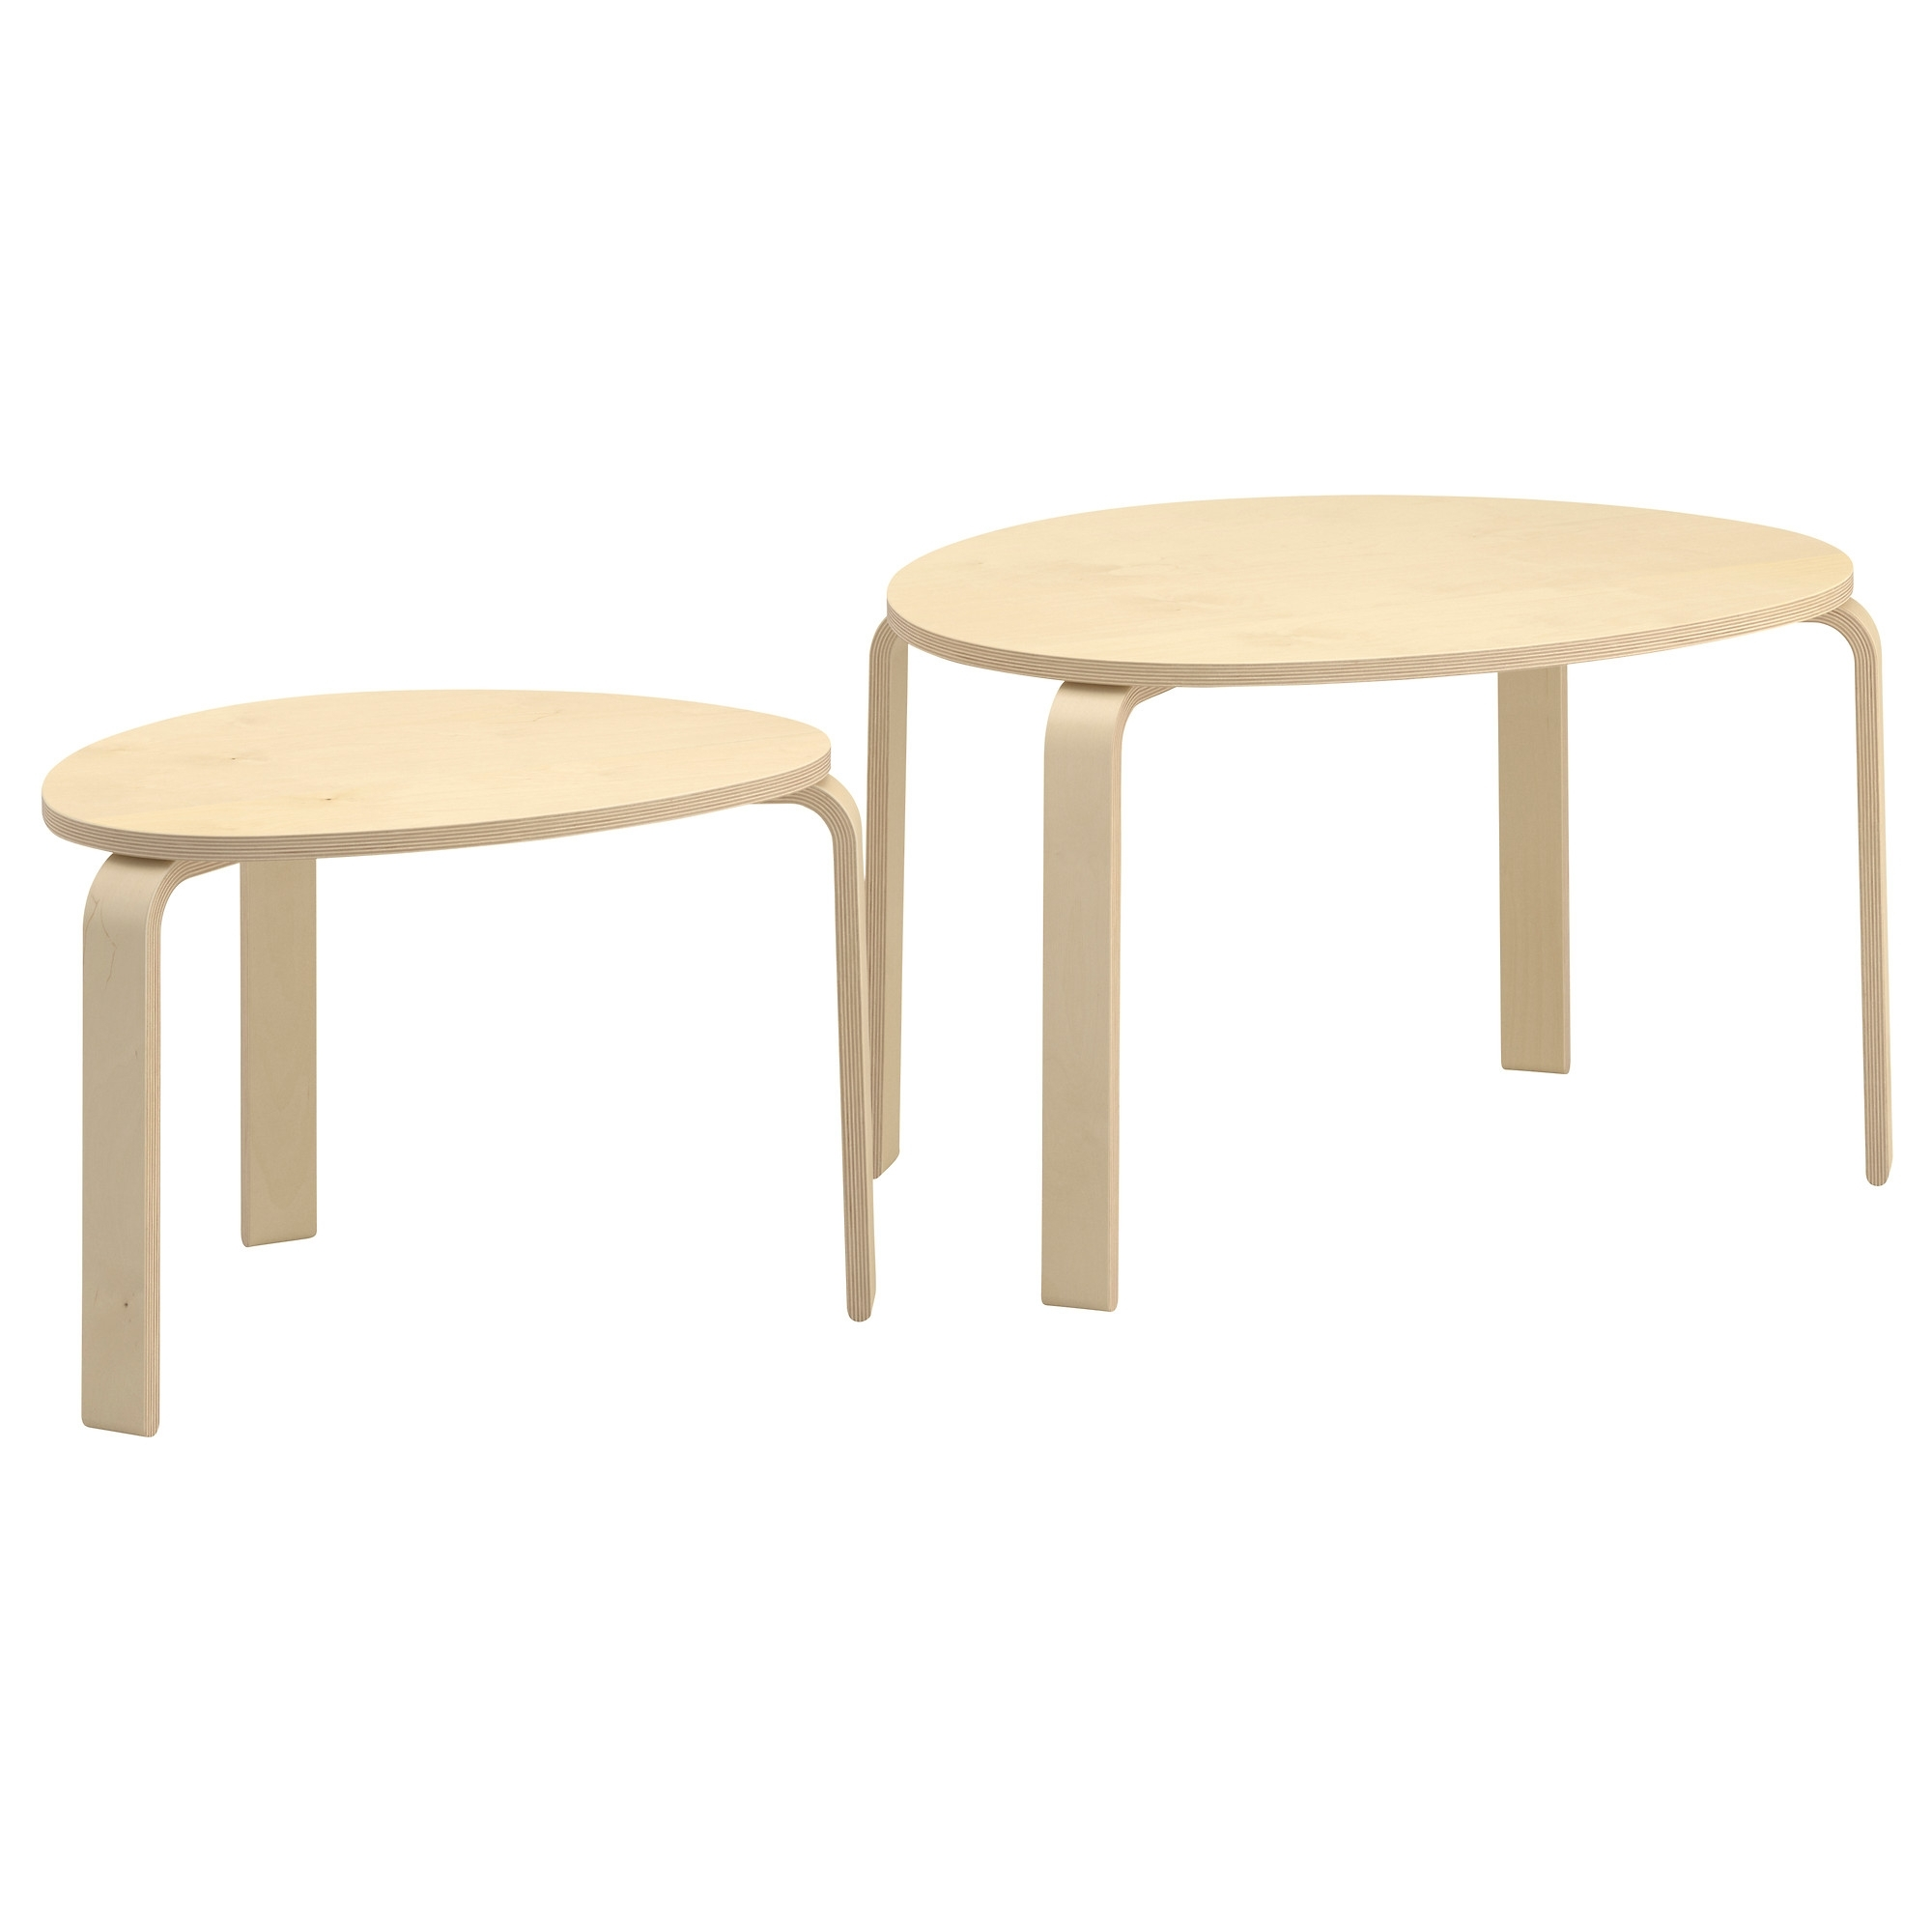 Recent Set Of Nesting Coffee Tables Within Ikea Latvia – Shop For Furniture, Lighting, Home Accessories & More (View 4 of 20)